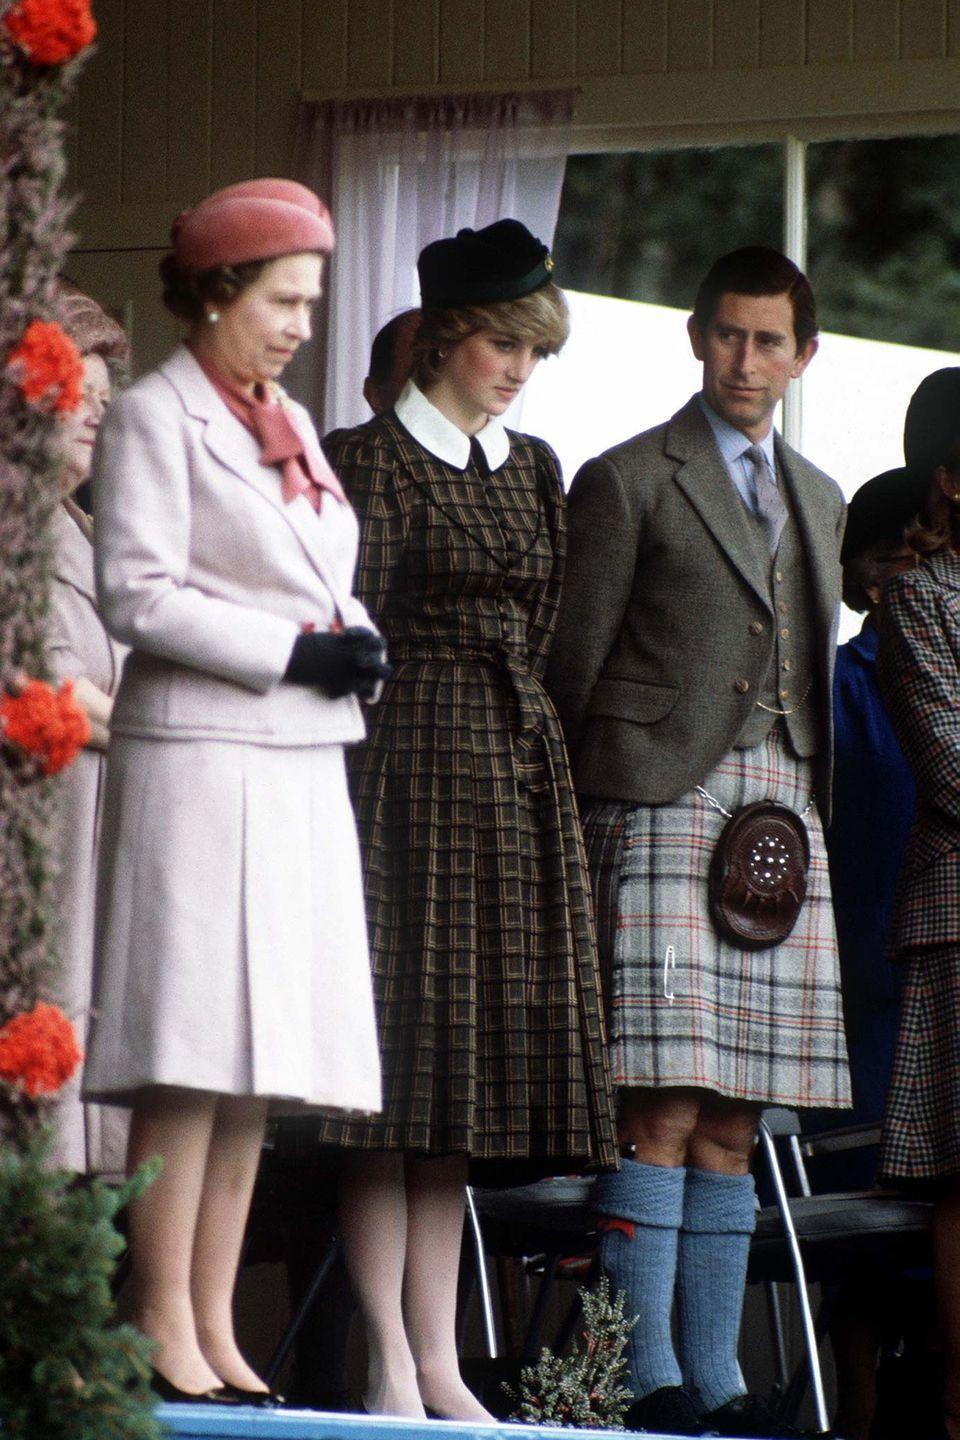 <p>The royal family even has their own Balmoral tartan, which was designed by Queen Victoria's husband in 1853. The gray, red, and black plaid can only be worn by the Queen and her personal piper, plus a few other members of the royal family (if the Queen gives her permission first!).</p>